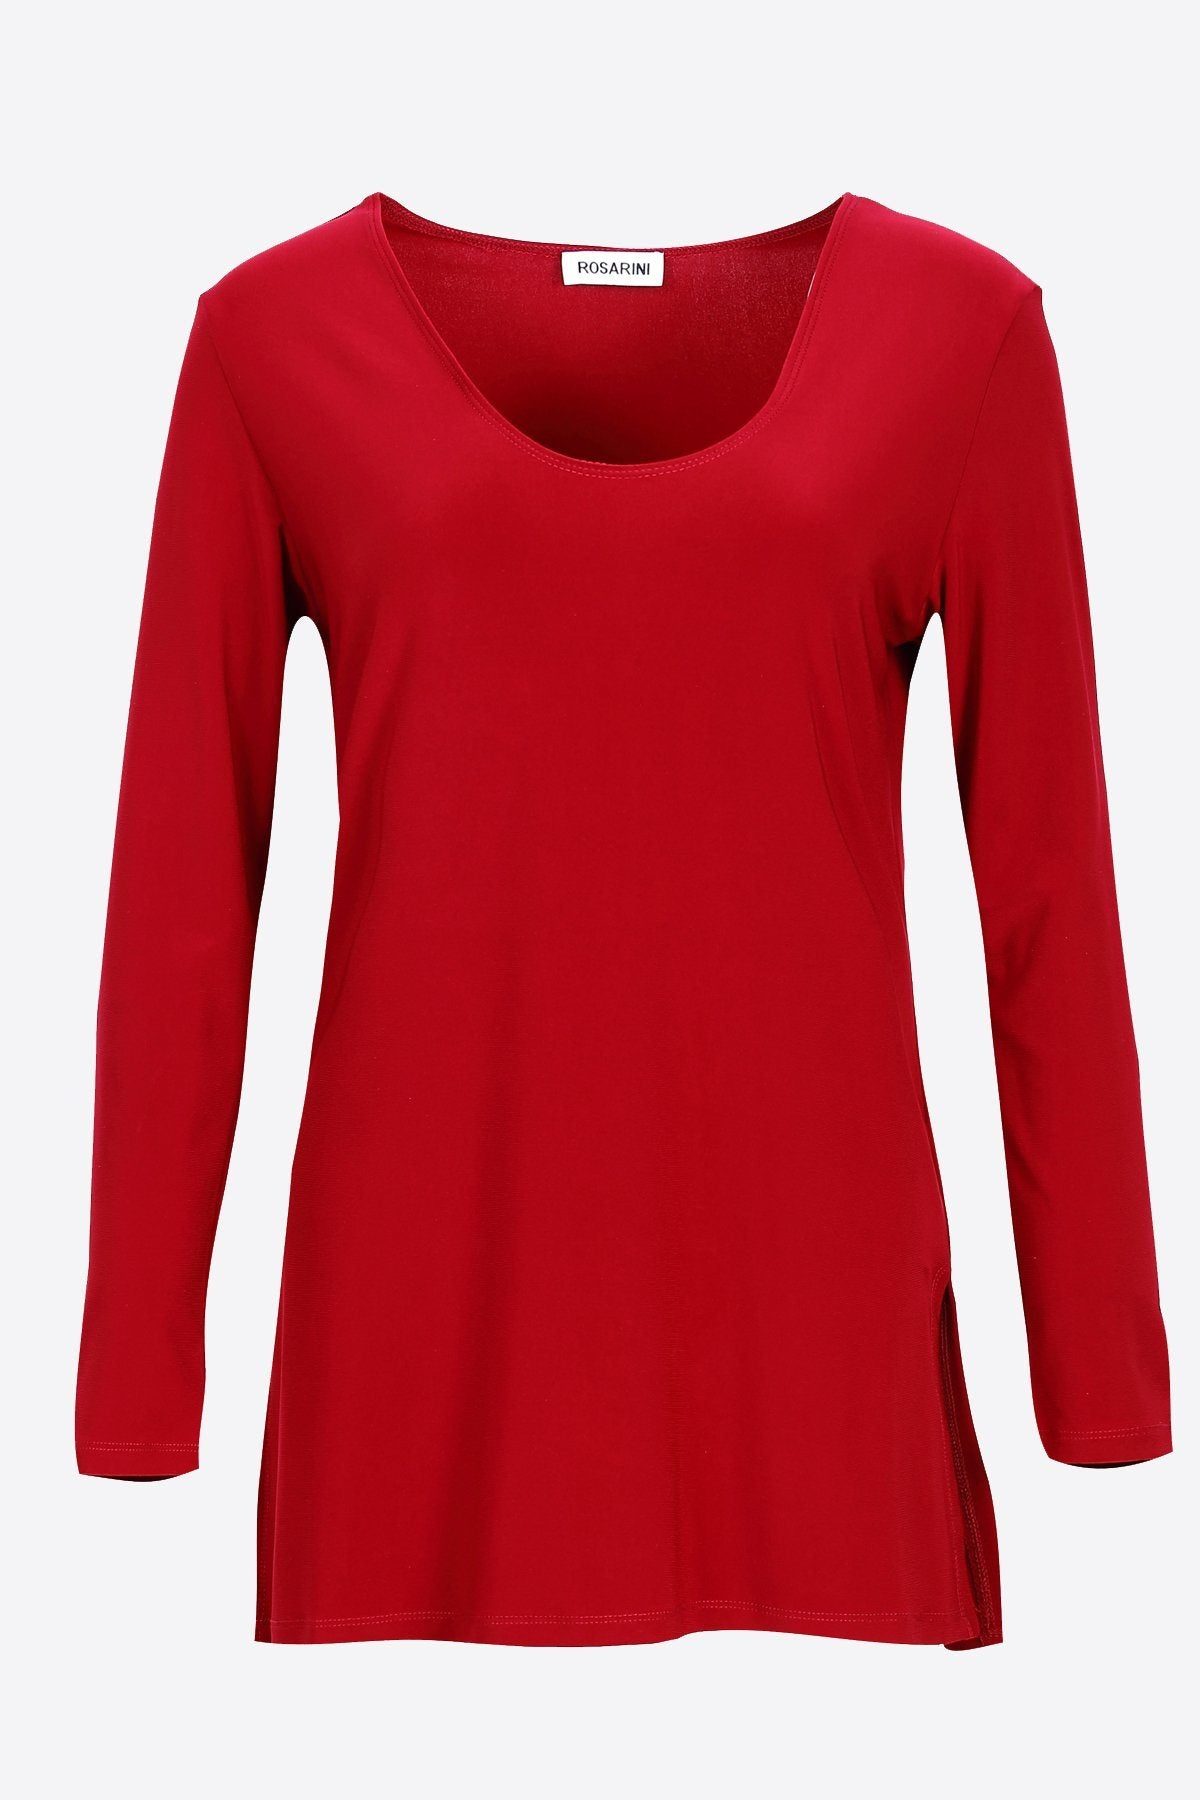 Long Sleeve Side Splits V-Neck Top red